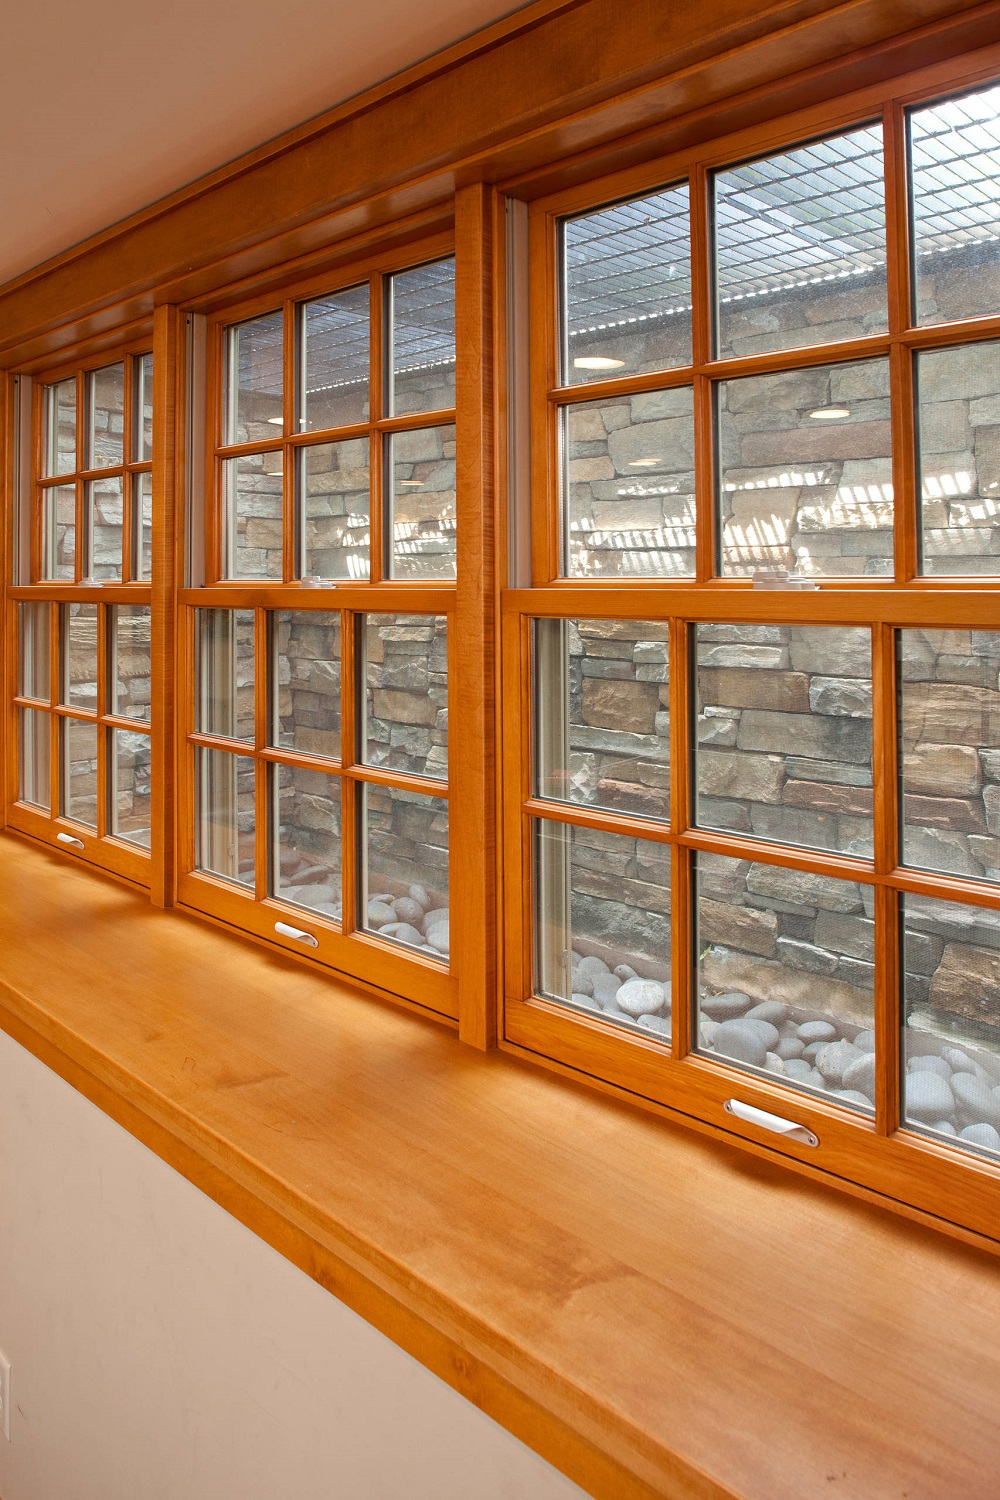 w8-1 The different types of windows you could have for your home